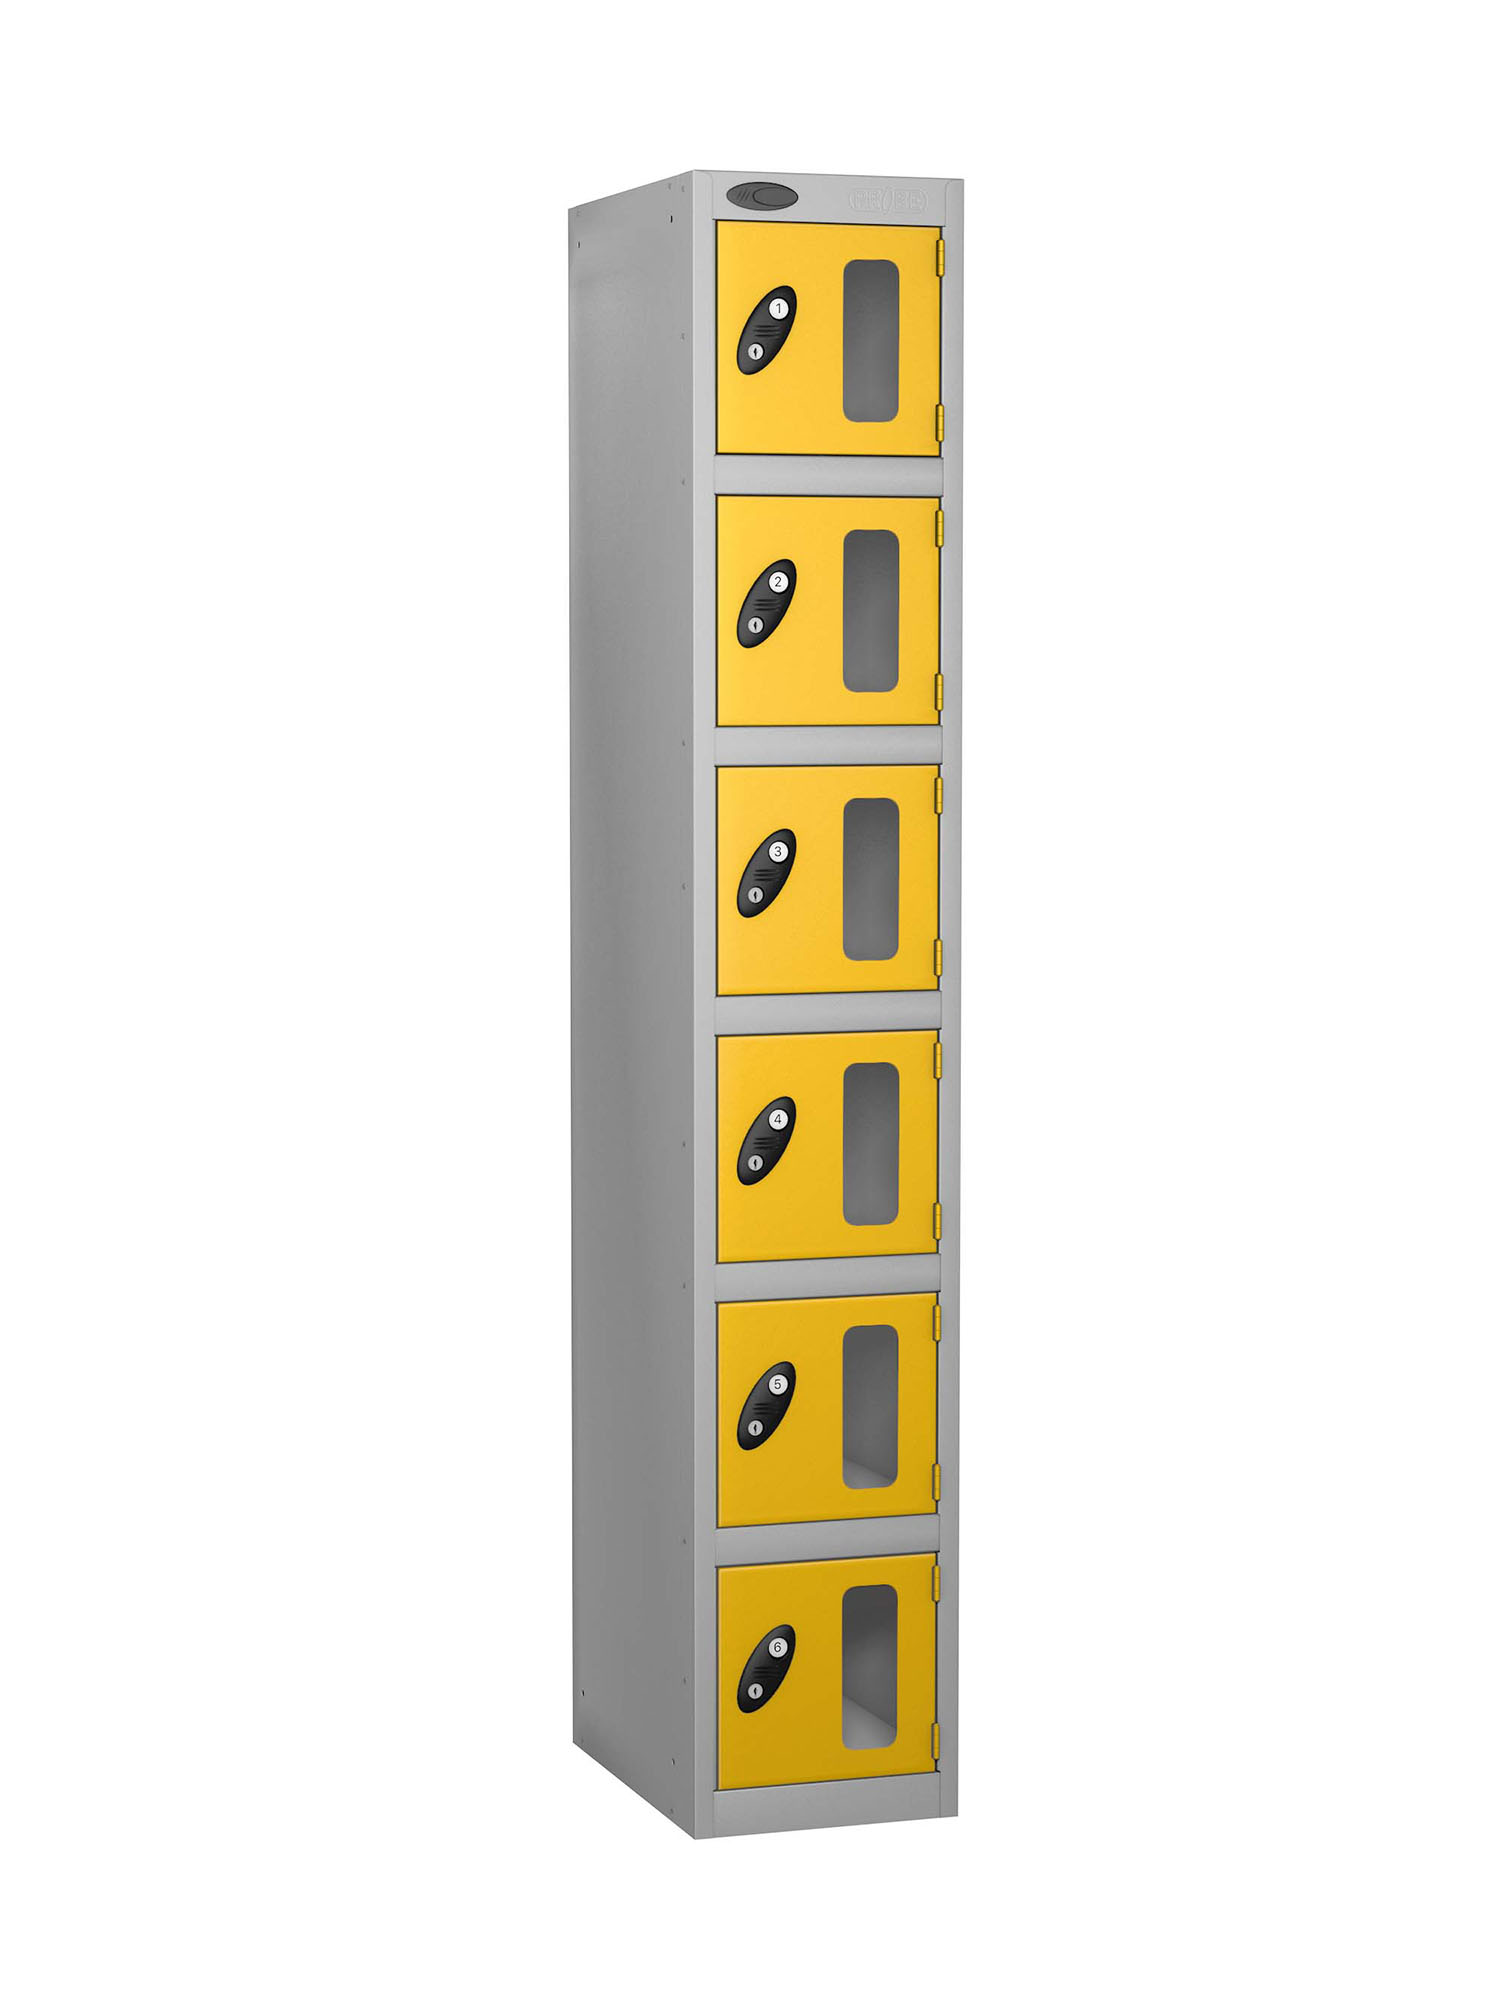 Probe 6 doors vision panel anti-stock theft locker yellow